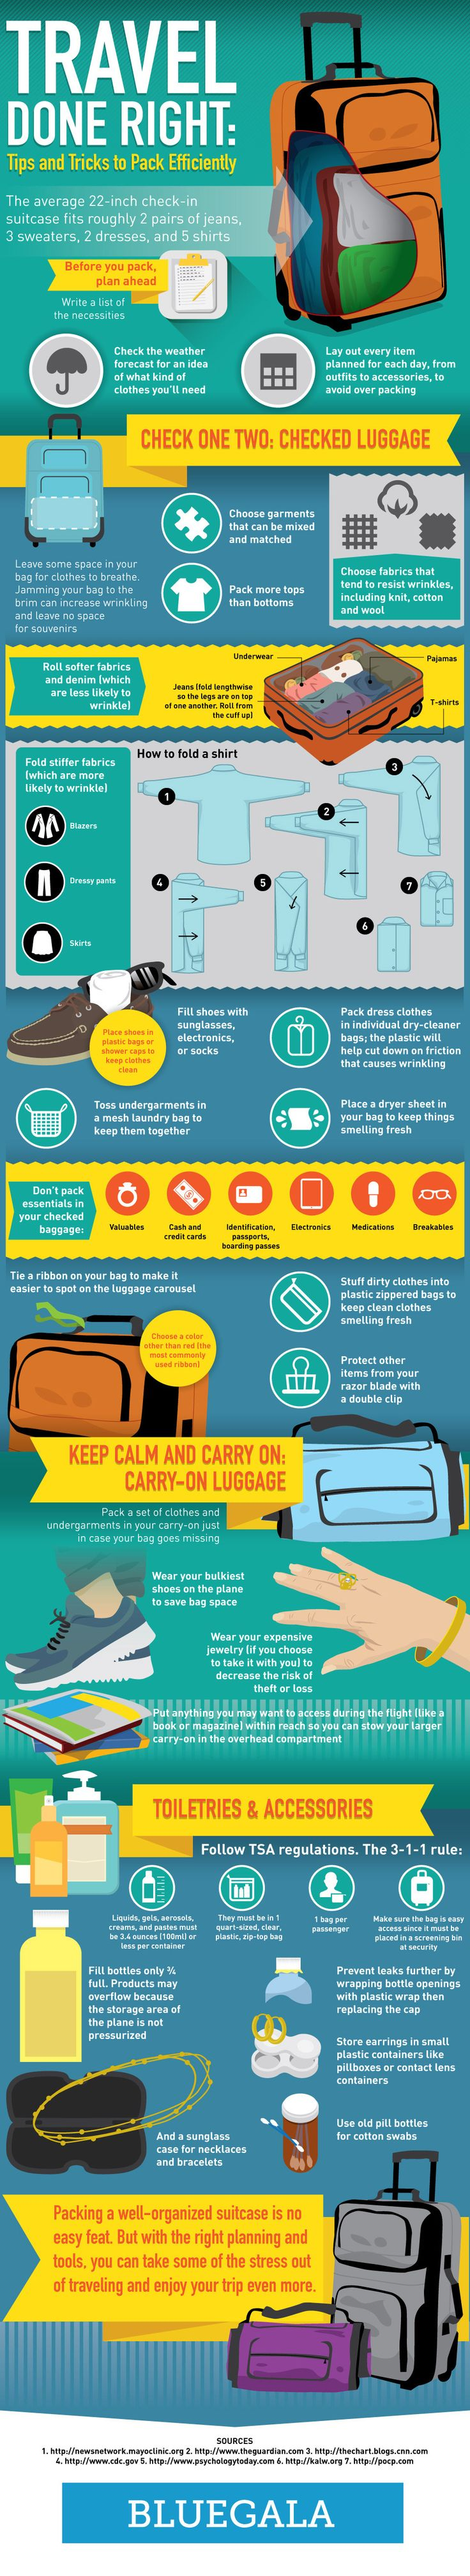 a v e n i d a a z u l . a 3 x a The best #packing tips for traveling fast and light! #traveltips #travel